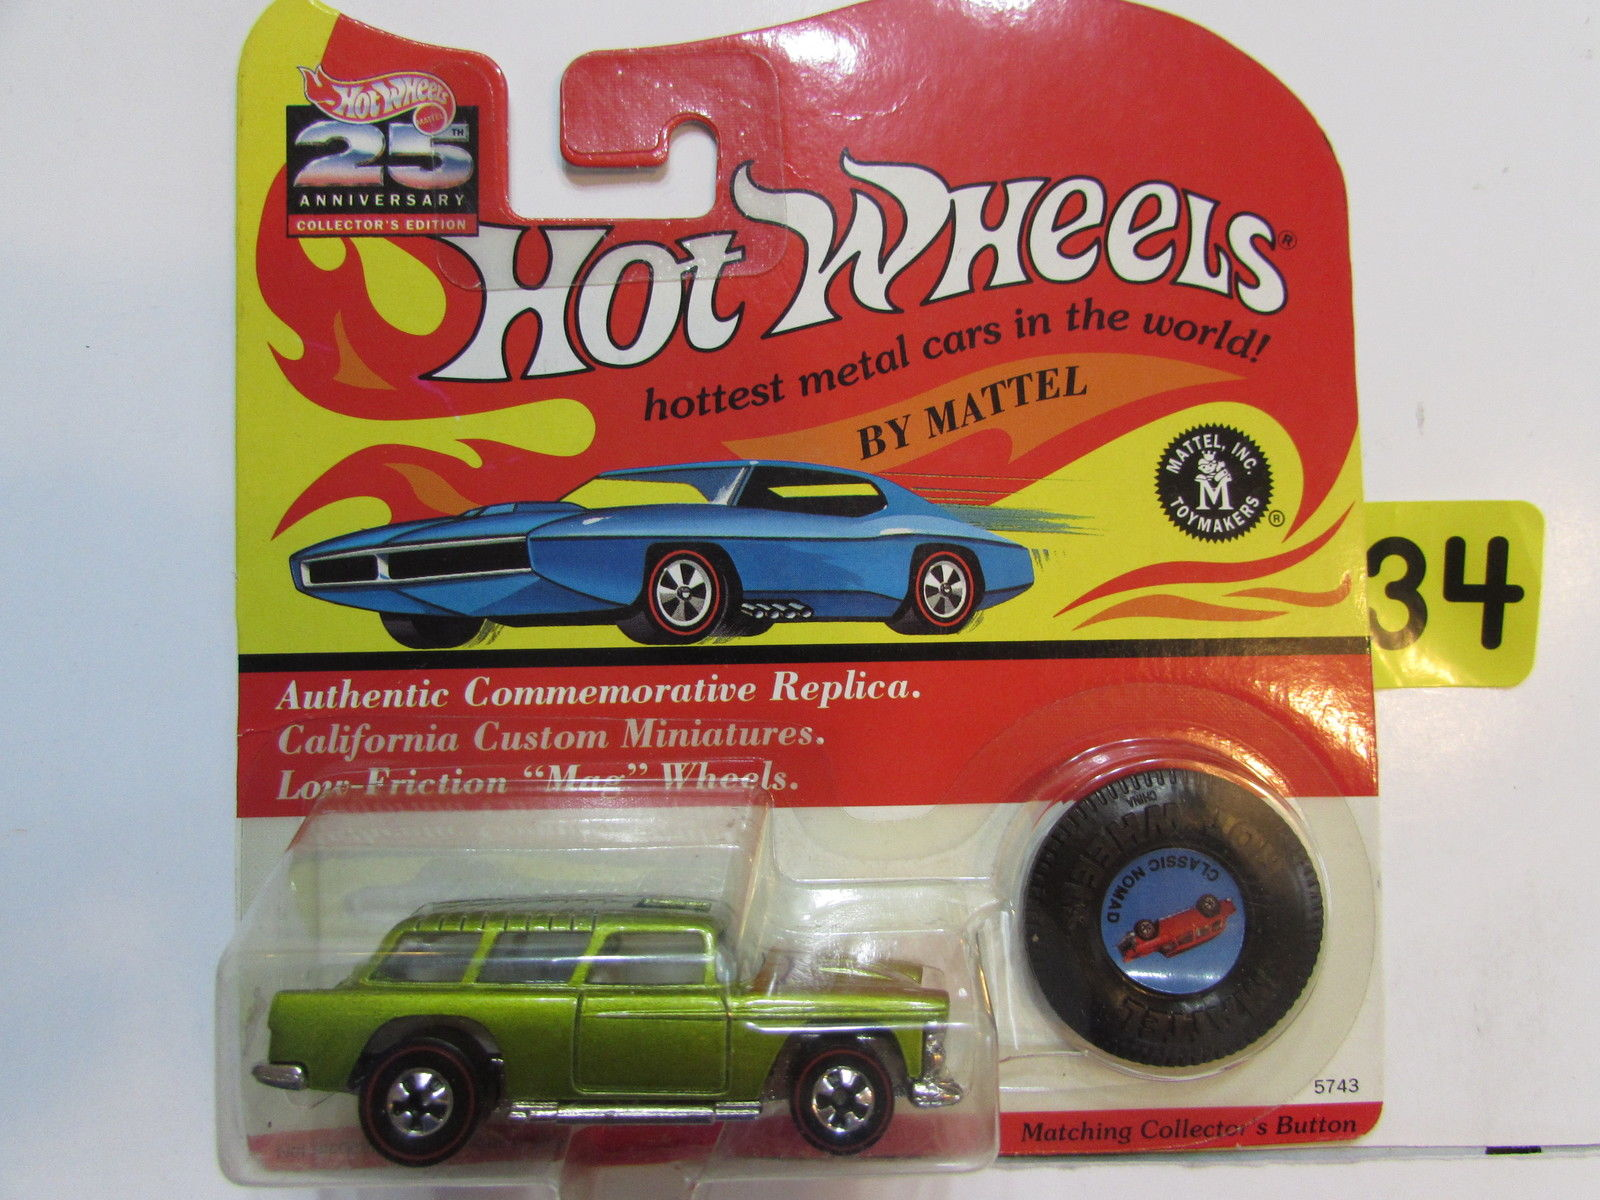 HOT WHEELS 1992 25TH ANNIVERSARY COLL EDITION - CLASSIC NOMAD W/ BUTTON